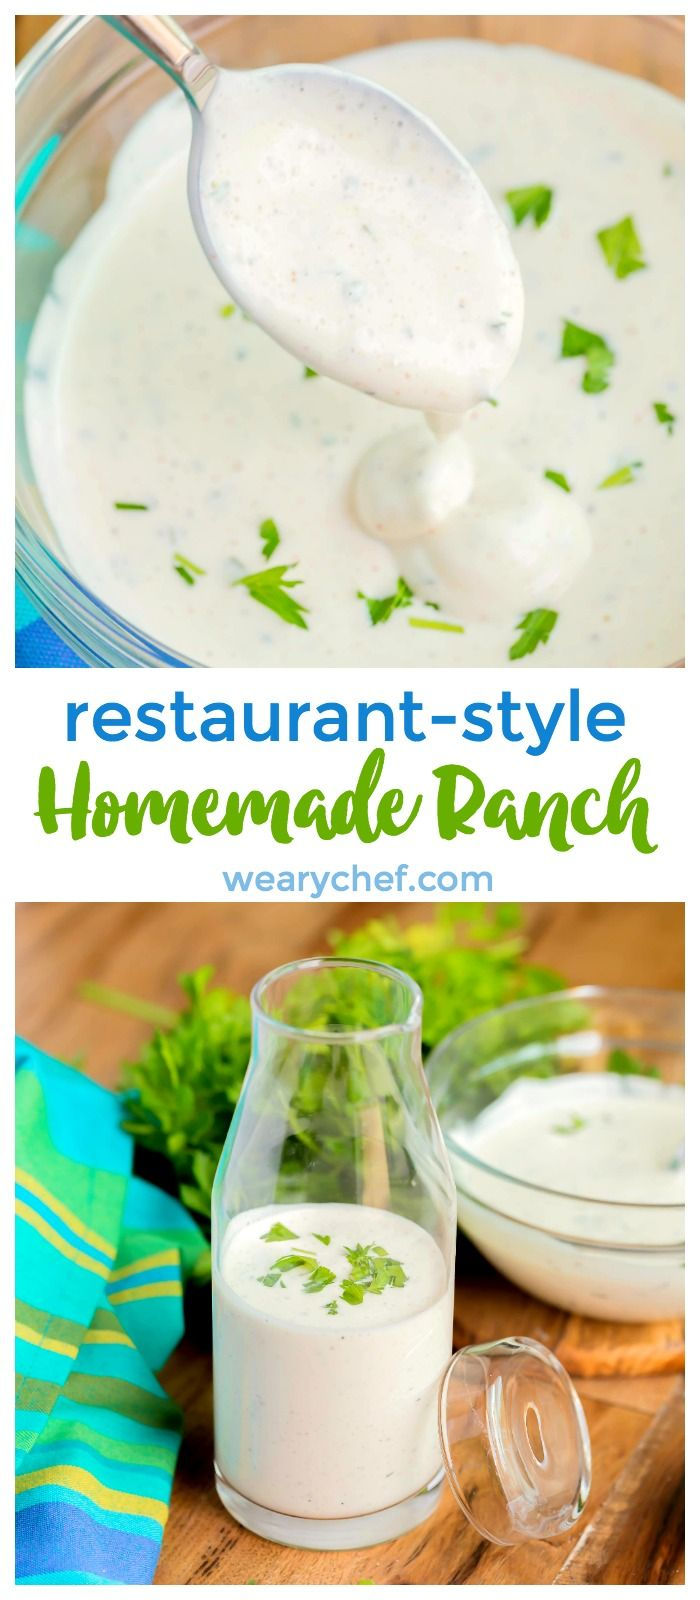 This restaurant-style homemade ranch dressing is thick, rich, and creamy. Perfect for dipping or salads!